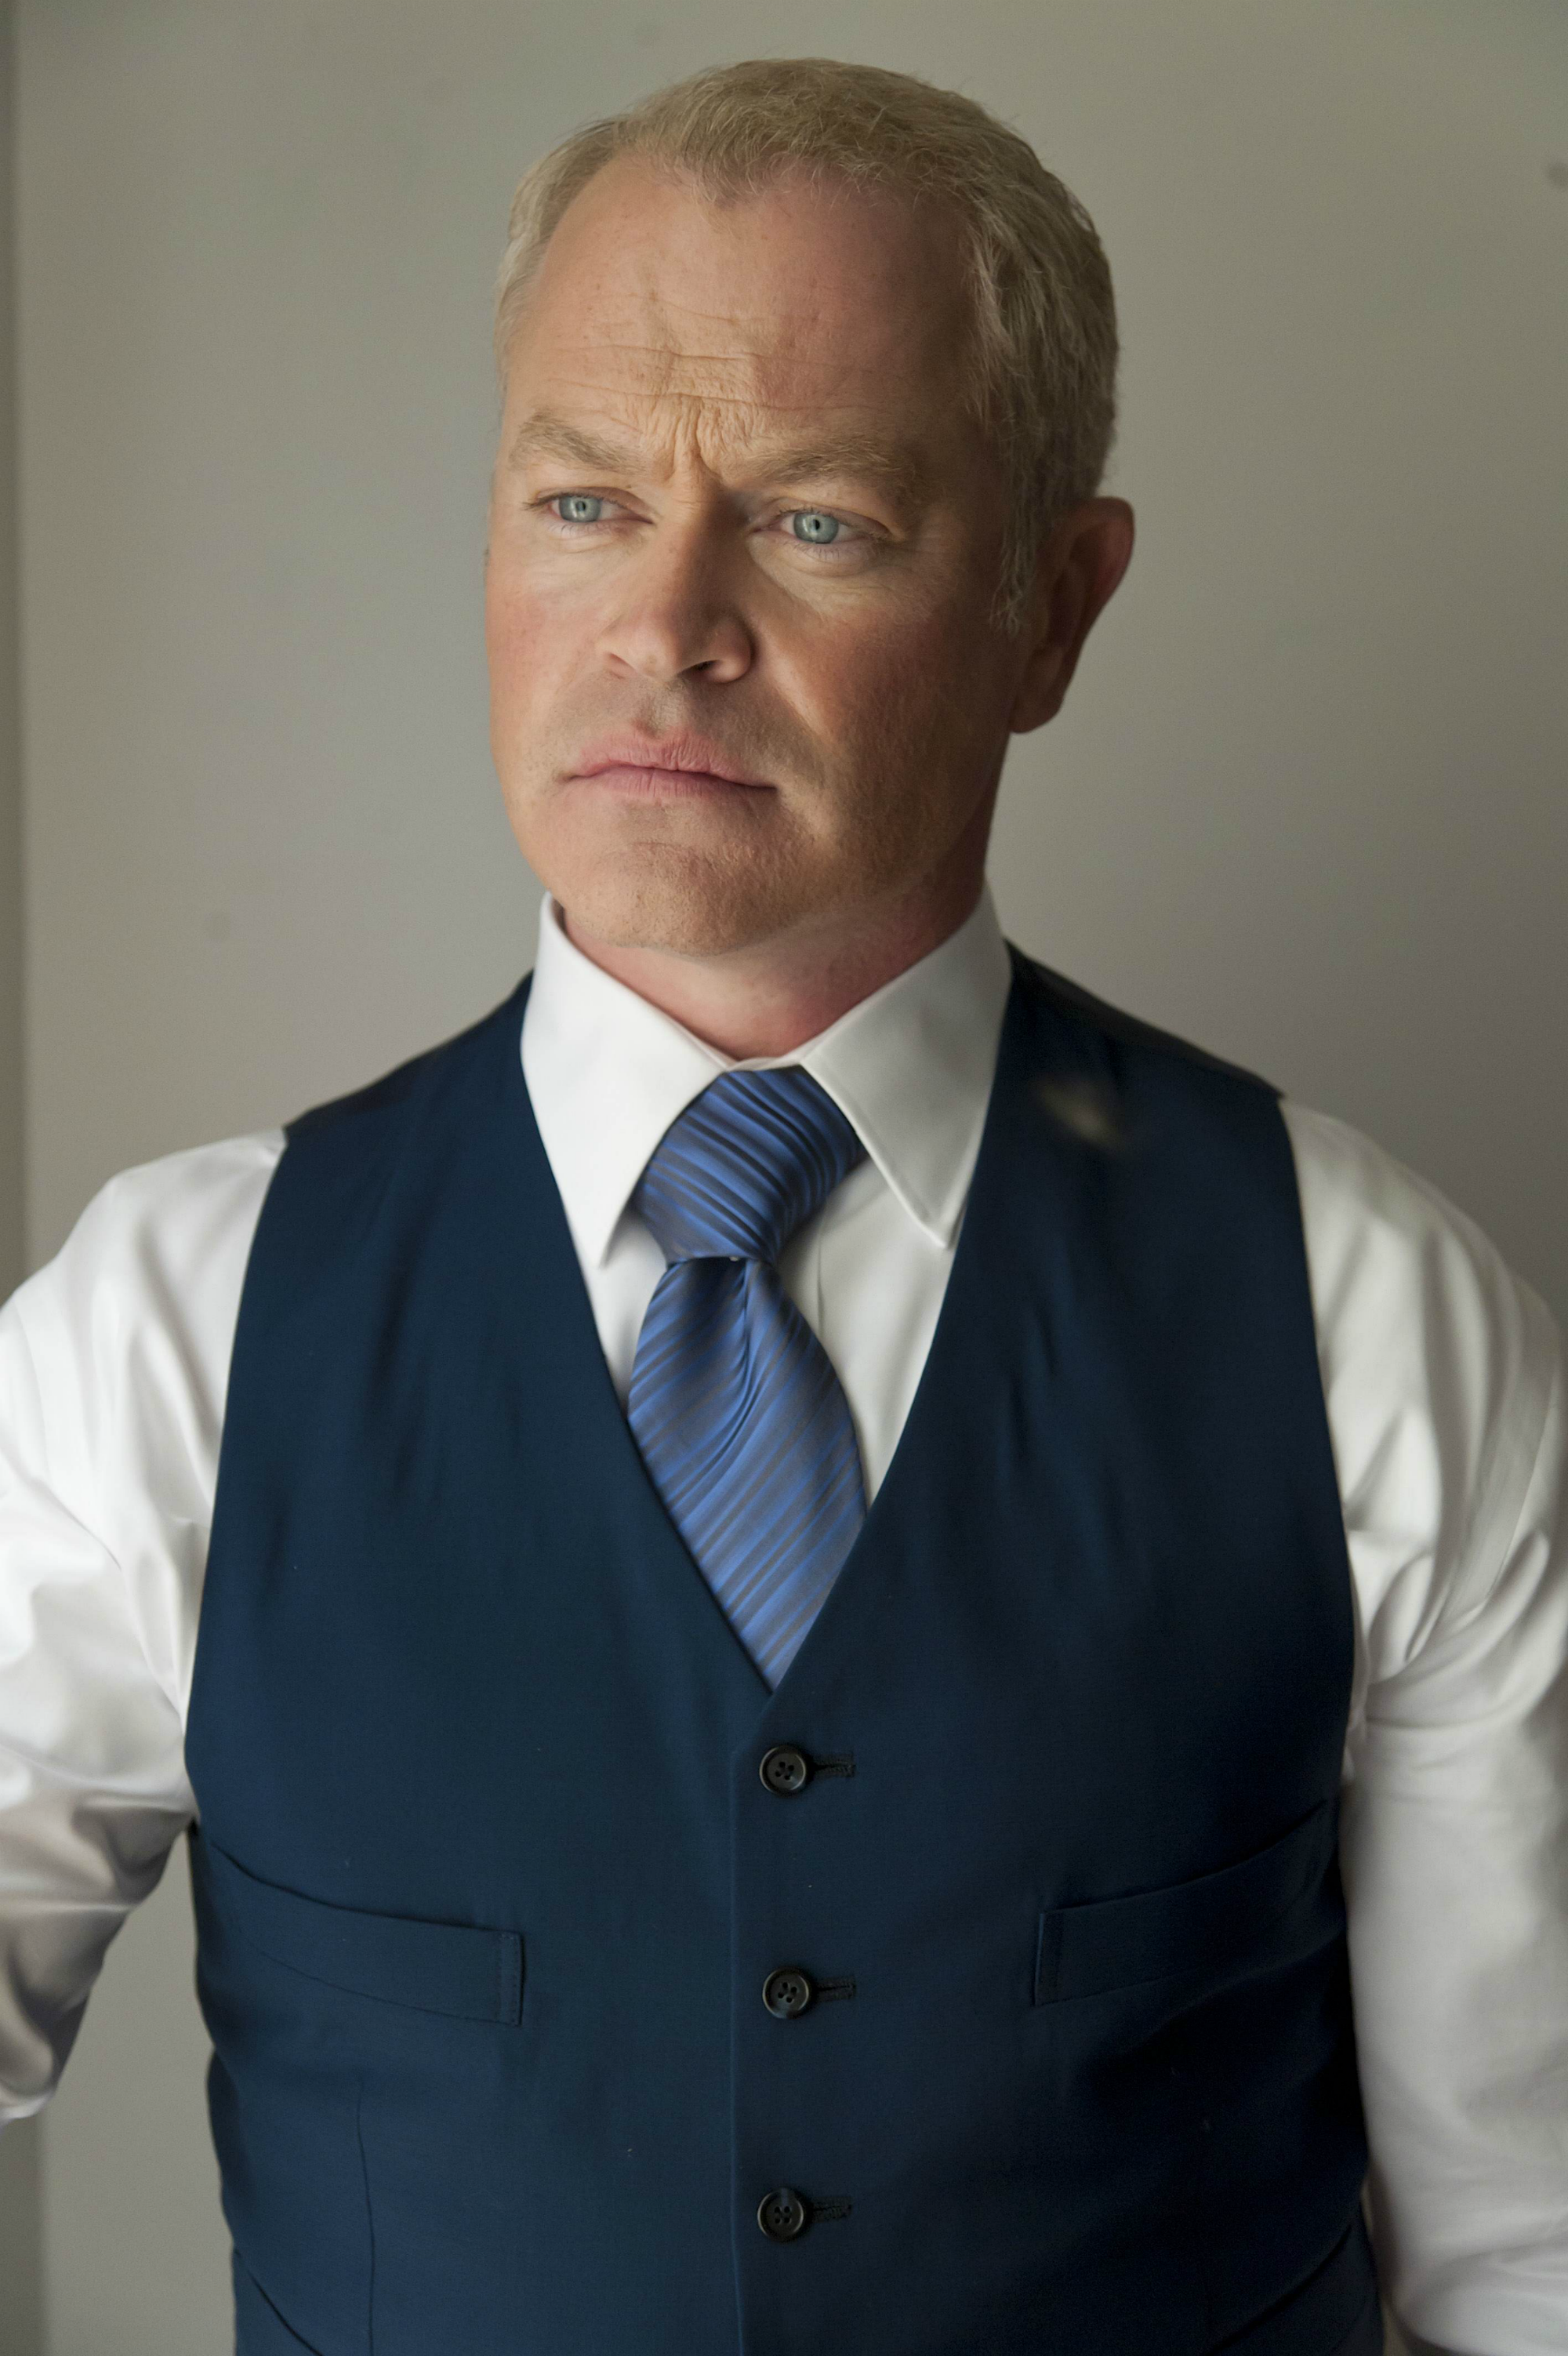 neal mcdonough filmlerineal mcdonough tumblr, neal mcdonough net worth, neal mcdonough wiki, neal mcdonough interview, neal mcdonough filmleri, neal mcdonough eyes, neal mcdonough csi, neal mcdonough wife, neal mcdonough twitter, neal mcdonough pictures, neal mcdonough, neal mcdonough imdb, neal mcdonough harmonica, neal mcdonough arrow, neal mcdonough captain america, neal mcdonough height, neal mcdonough cadillac, neal mcdonough young, neal mcdonough suits, neal mcdonough family